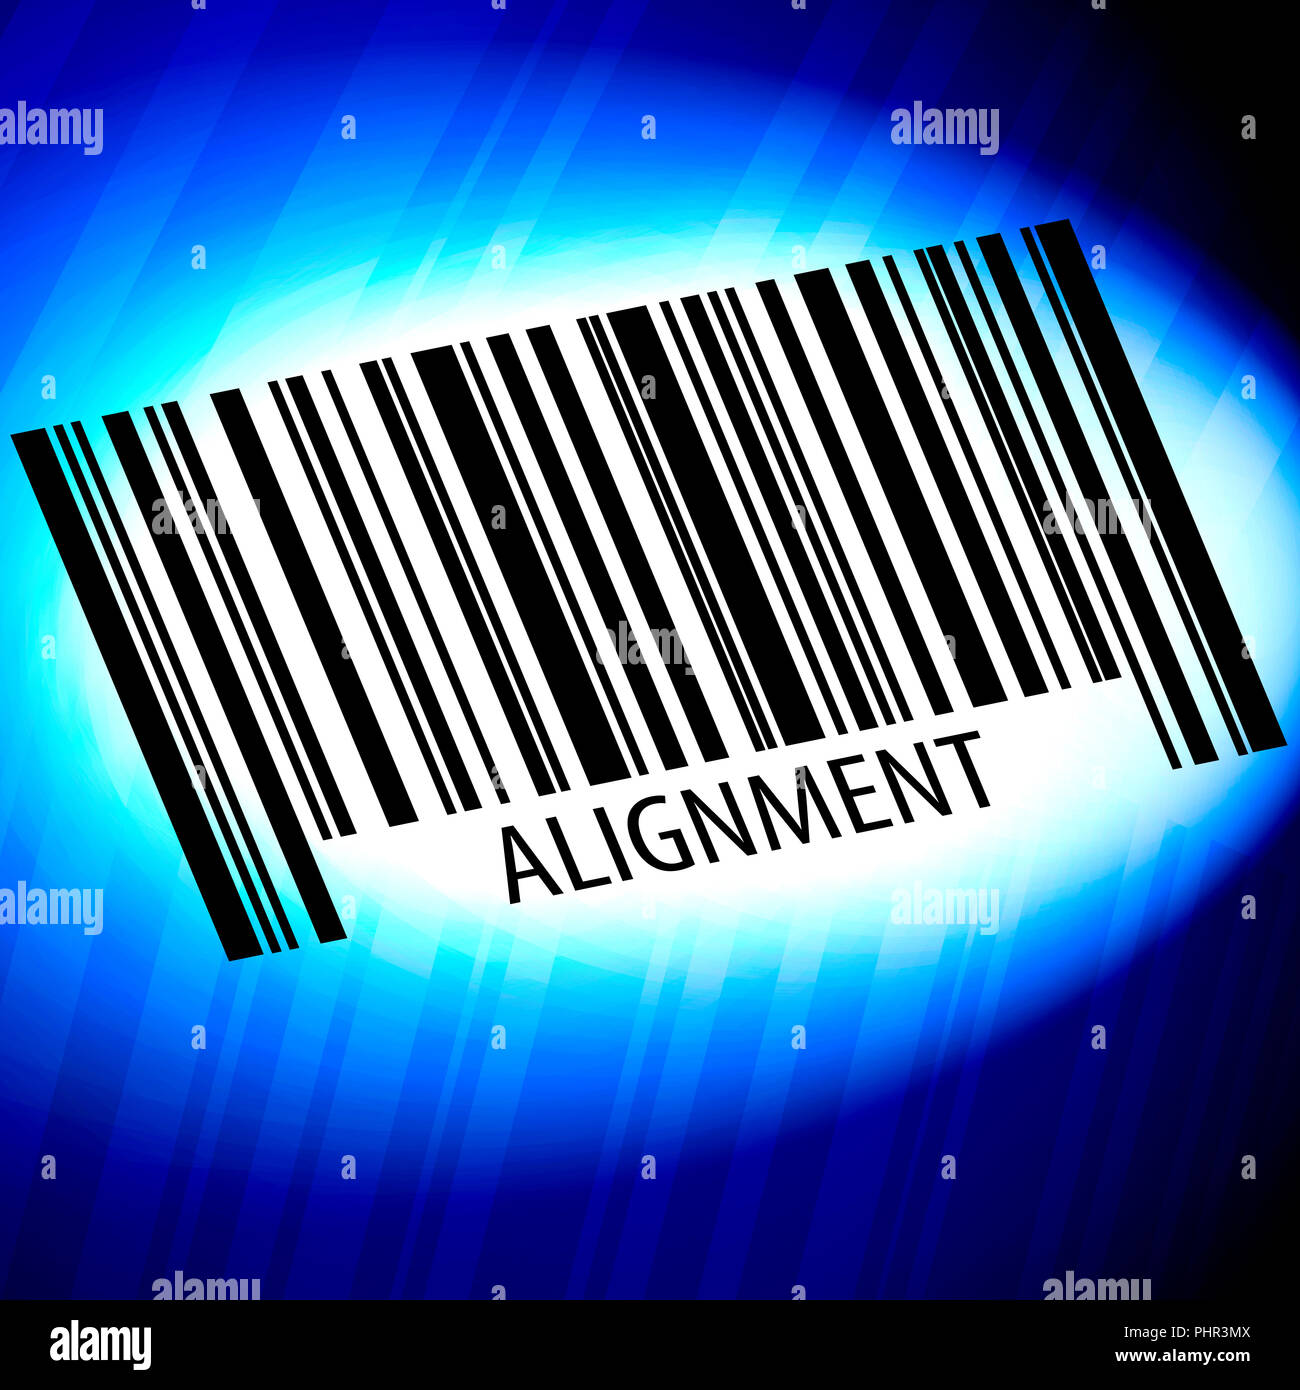 Alignment - barcode with blue Background - Stock Image